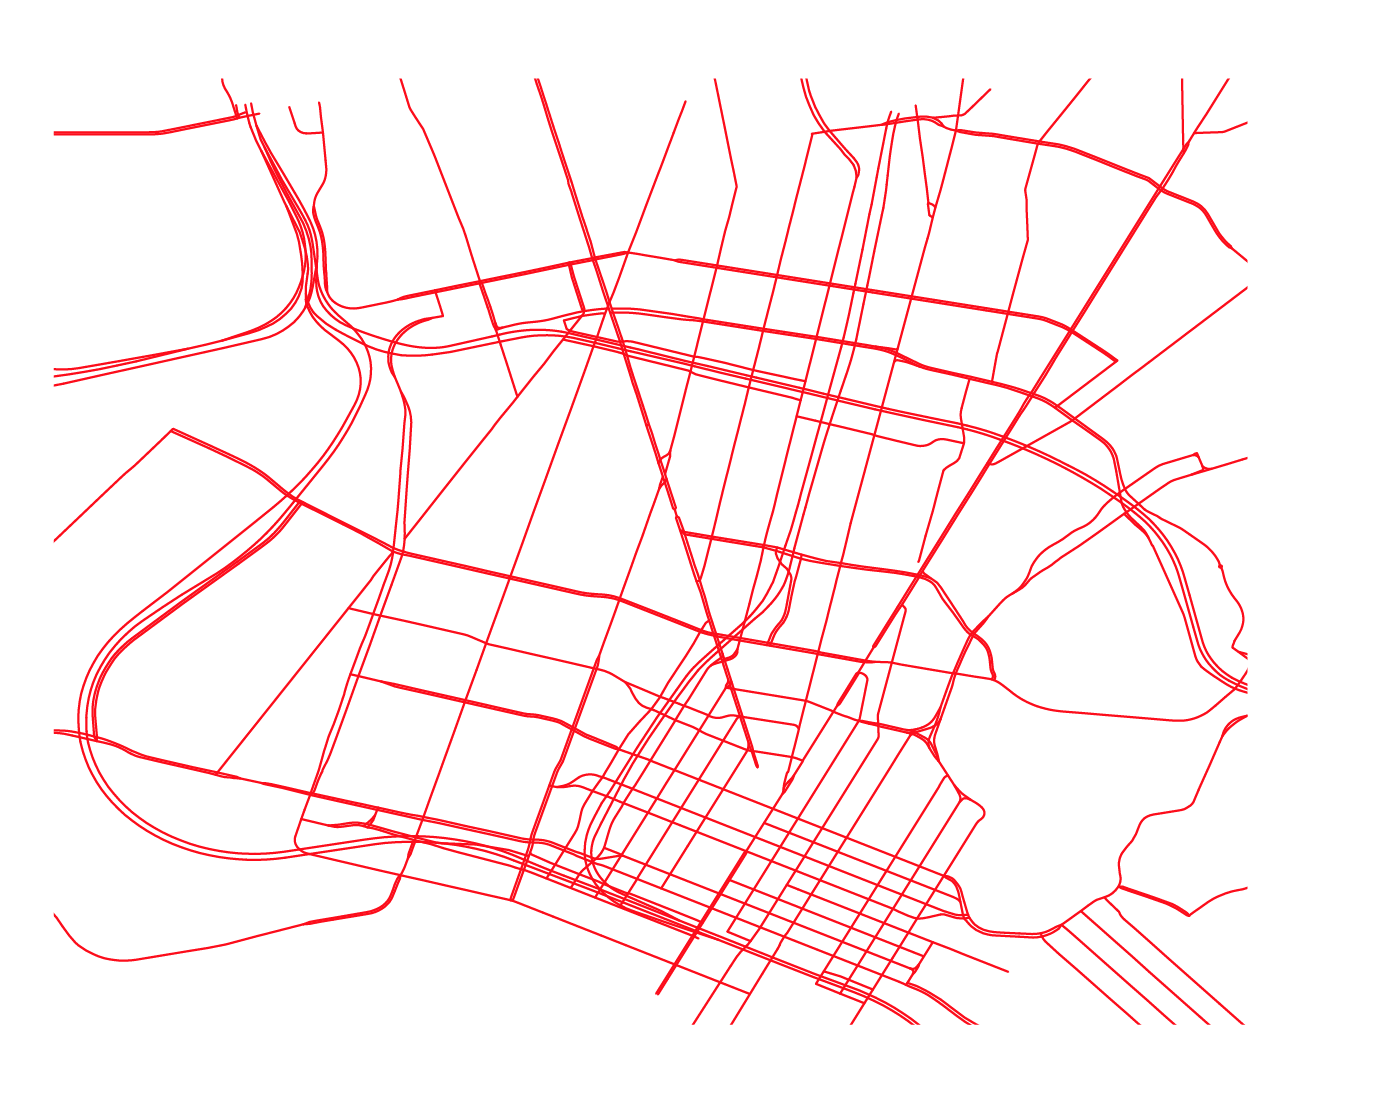 Here's the vector version after our filtered data has passed through QGIS and into Illustrator